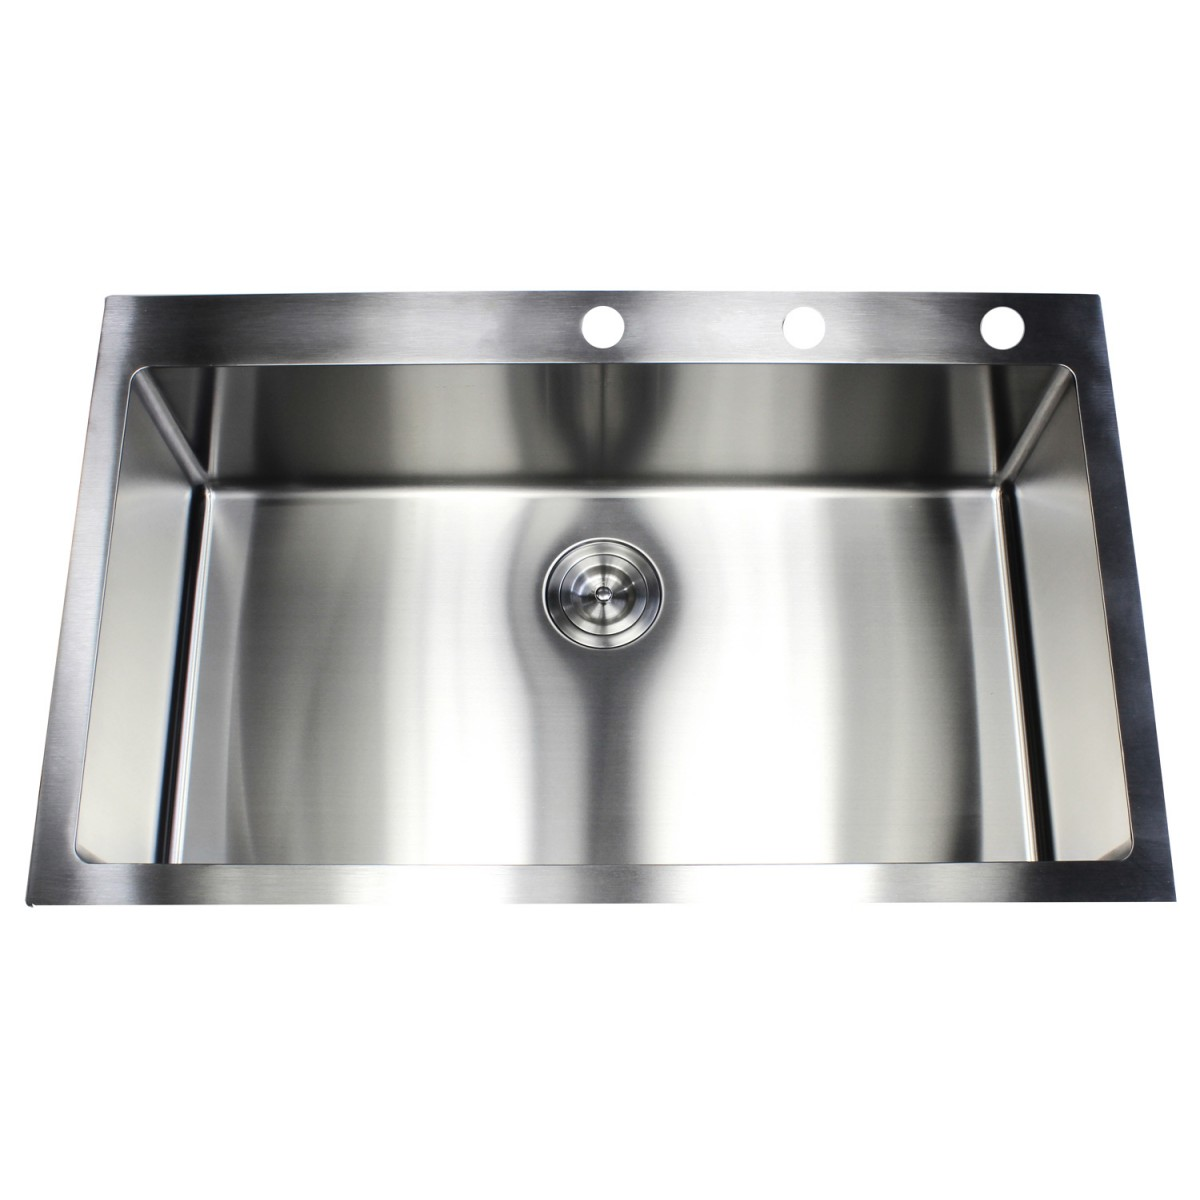 single bowl kitchen sink top mount 36 inch top mount drop in stainless steel single bowl 9305